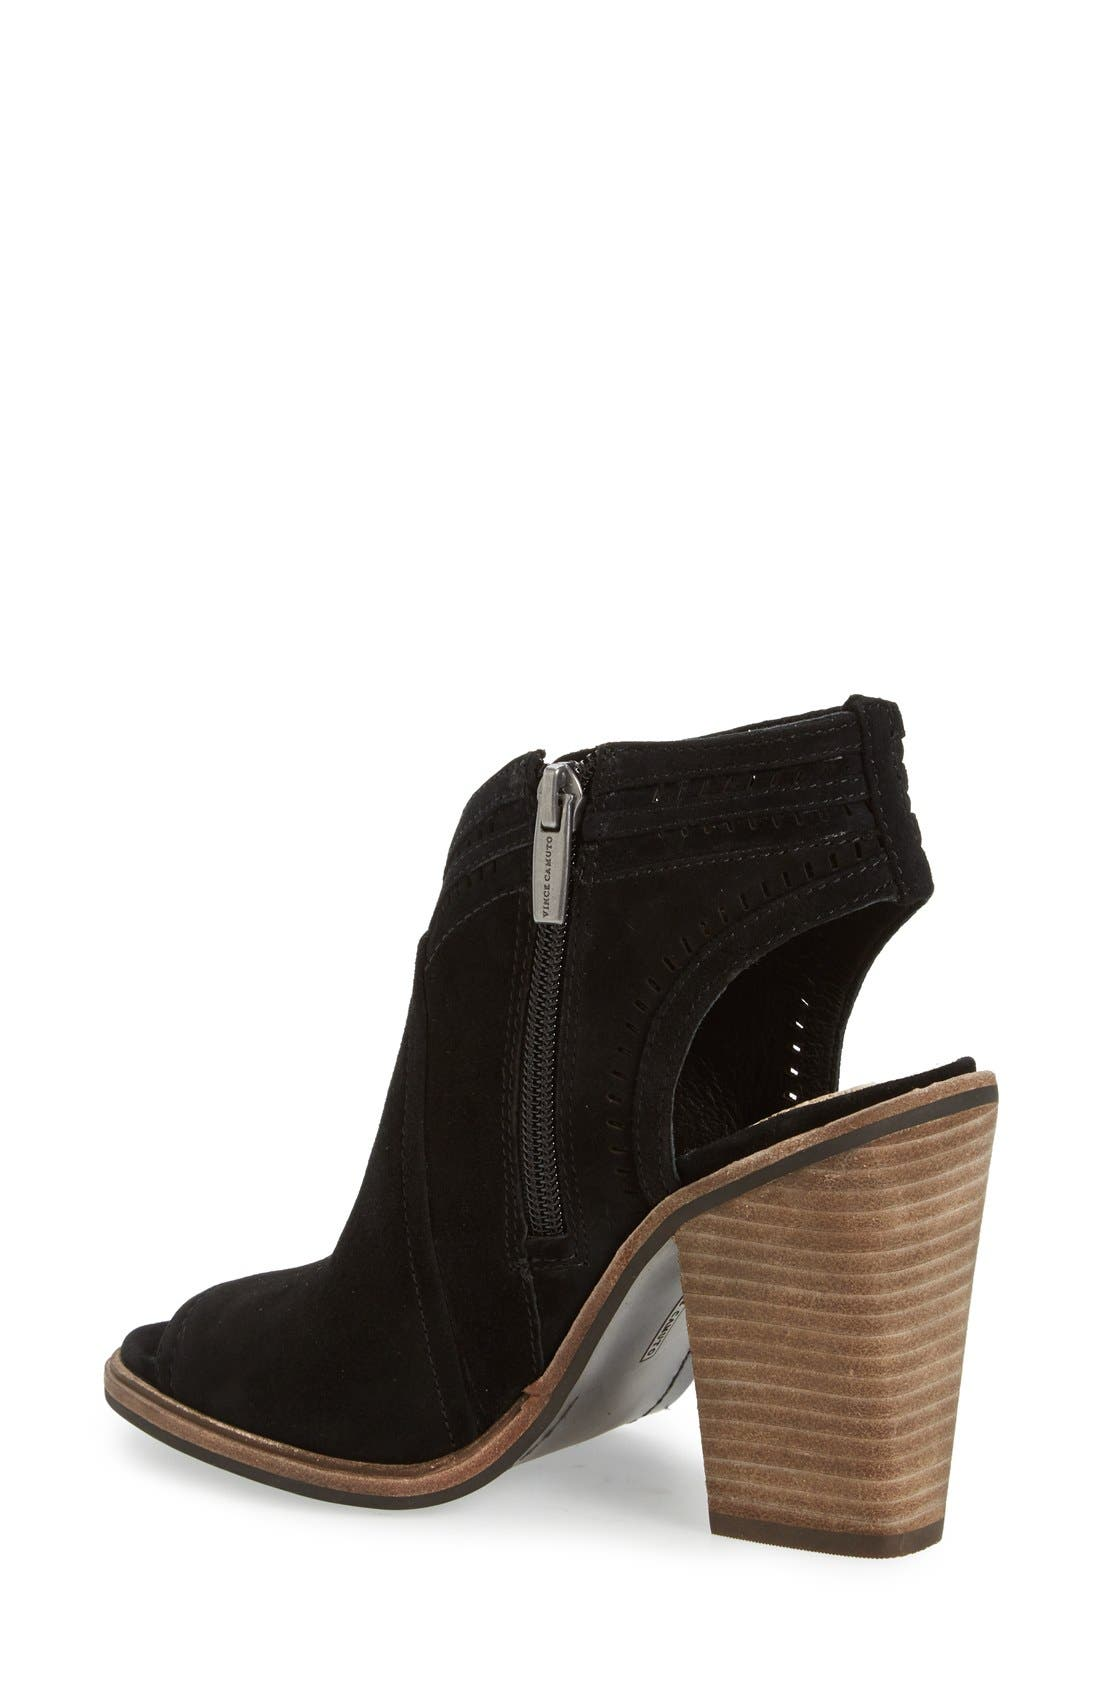 VINCE CAMUTO, 'Koral' Perforated Open Toe Bootie, Alternate thumbnail 2, color, 001